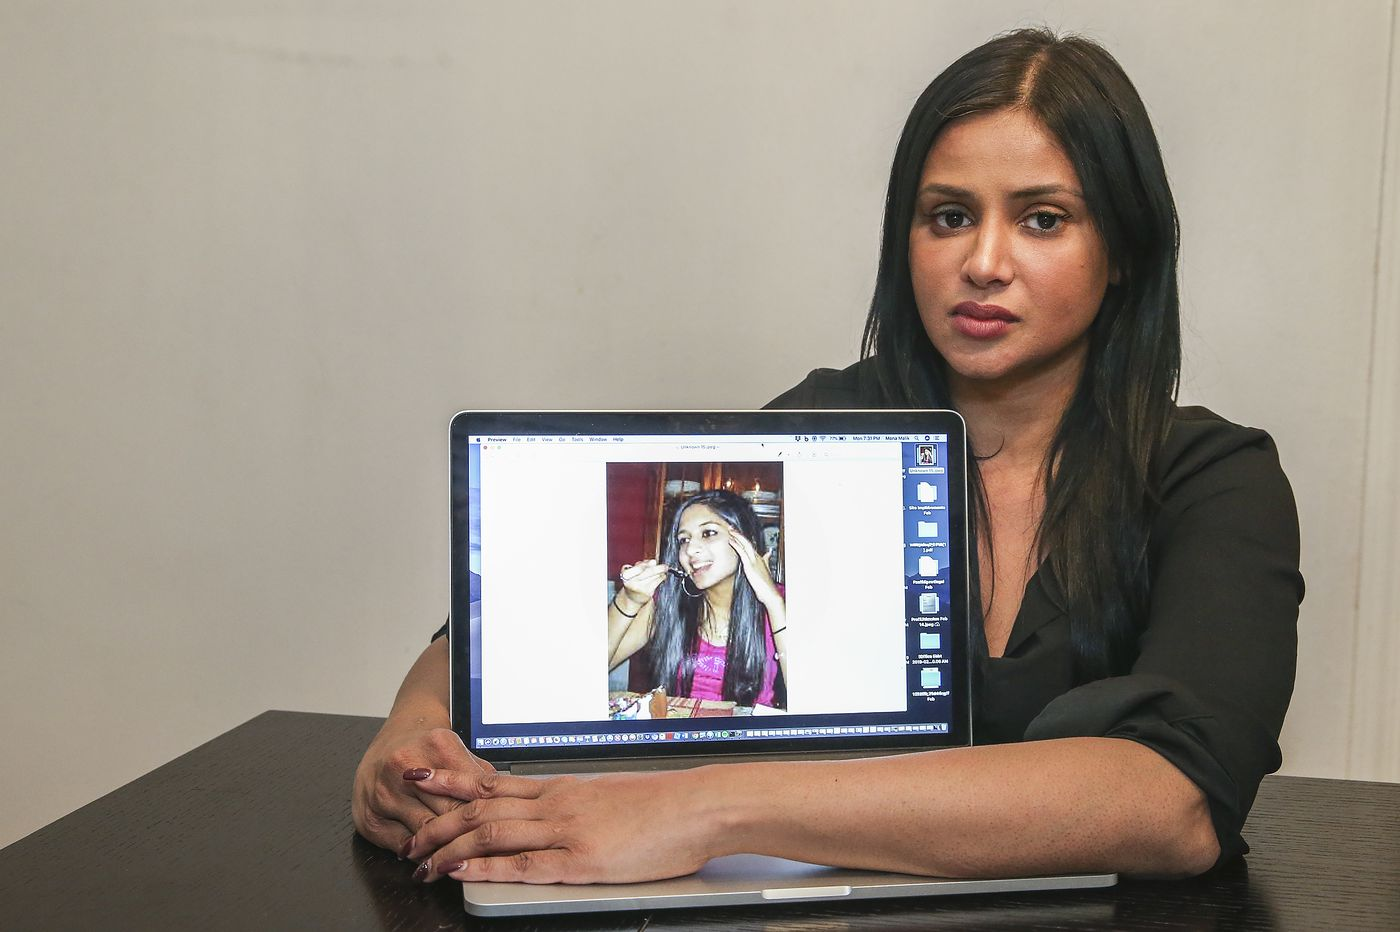 5 years after Nadia Malik's death, grief and uncertainty weigh heavily on her family